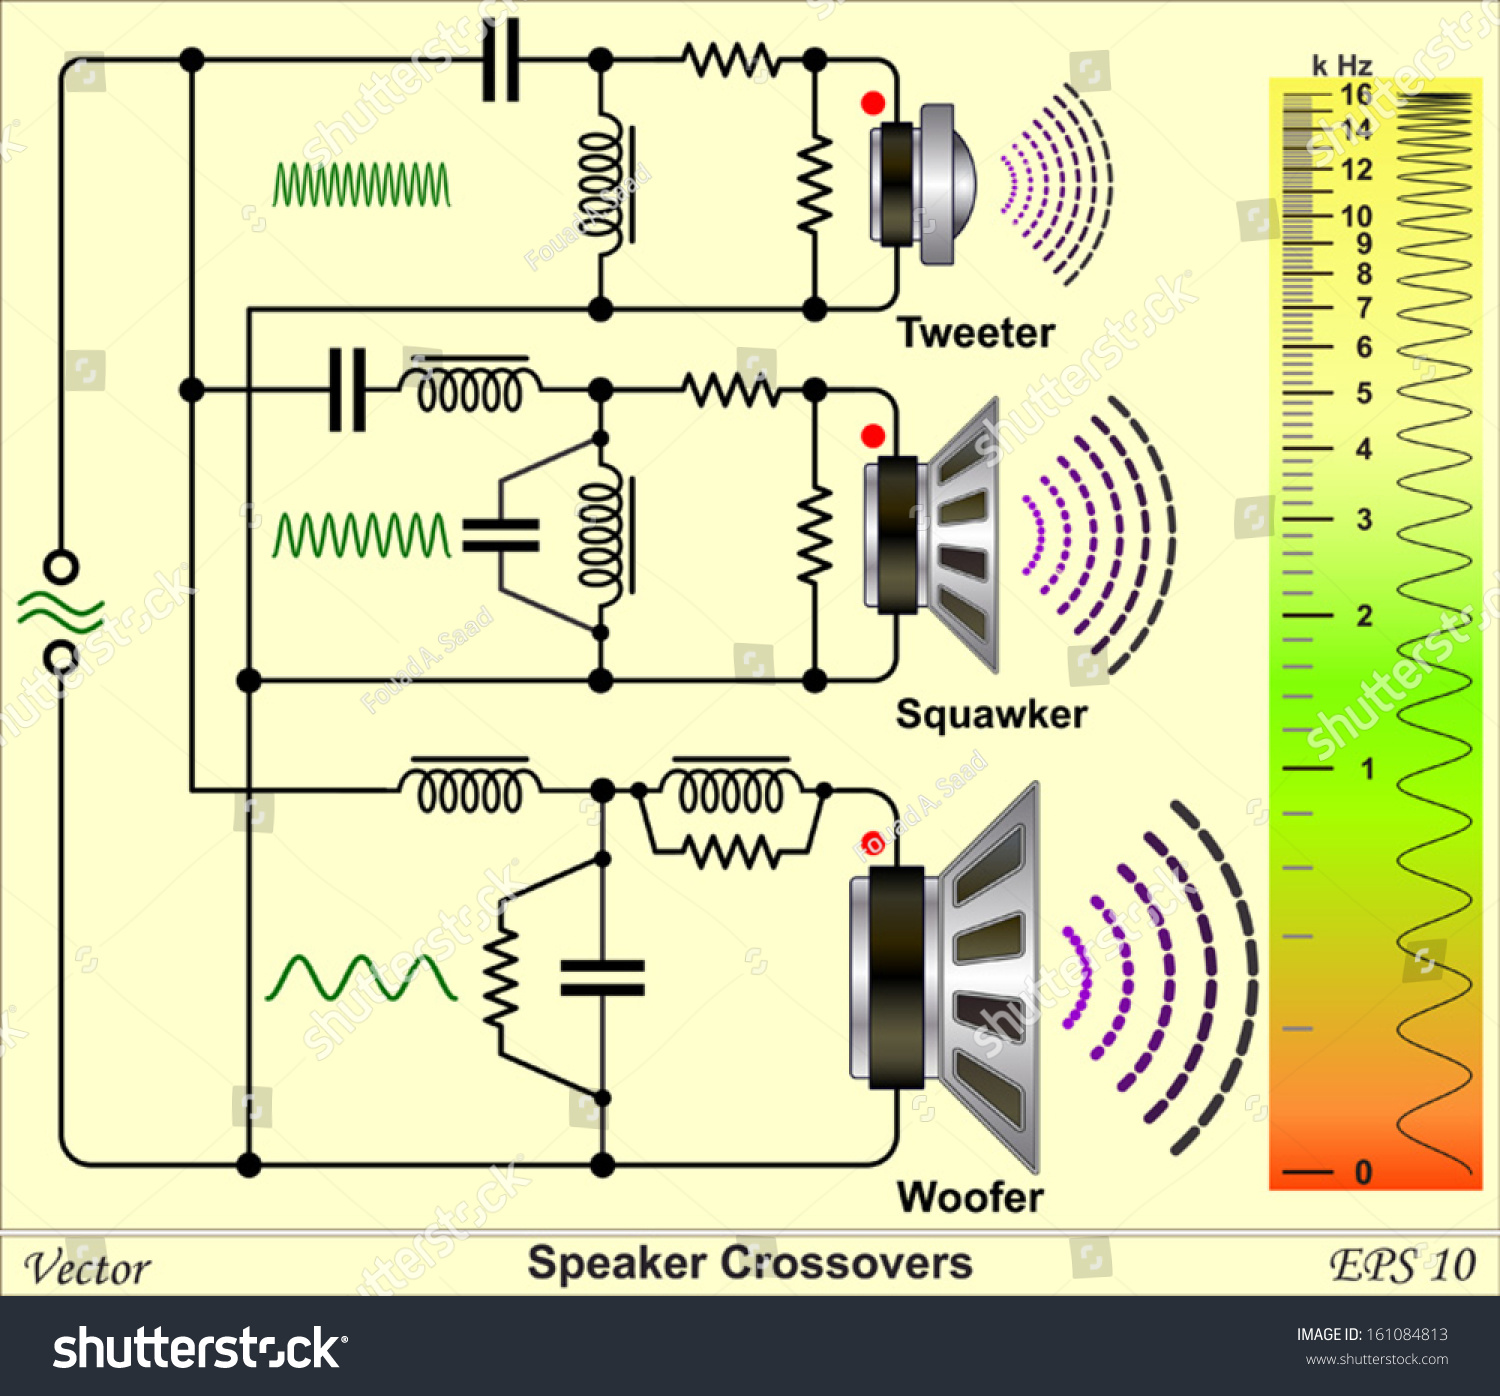 Astonishing Speaker Crossovers Circuit Diagram Stock Vector Royalty Free Wiring Digital Resources Bemuashebarightsorg